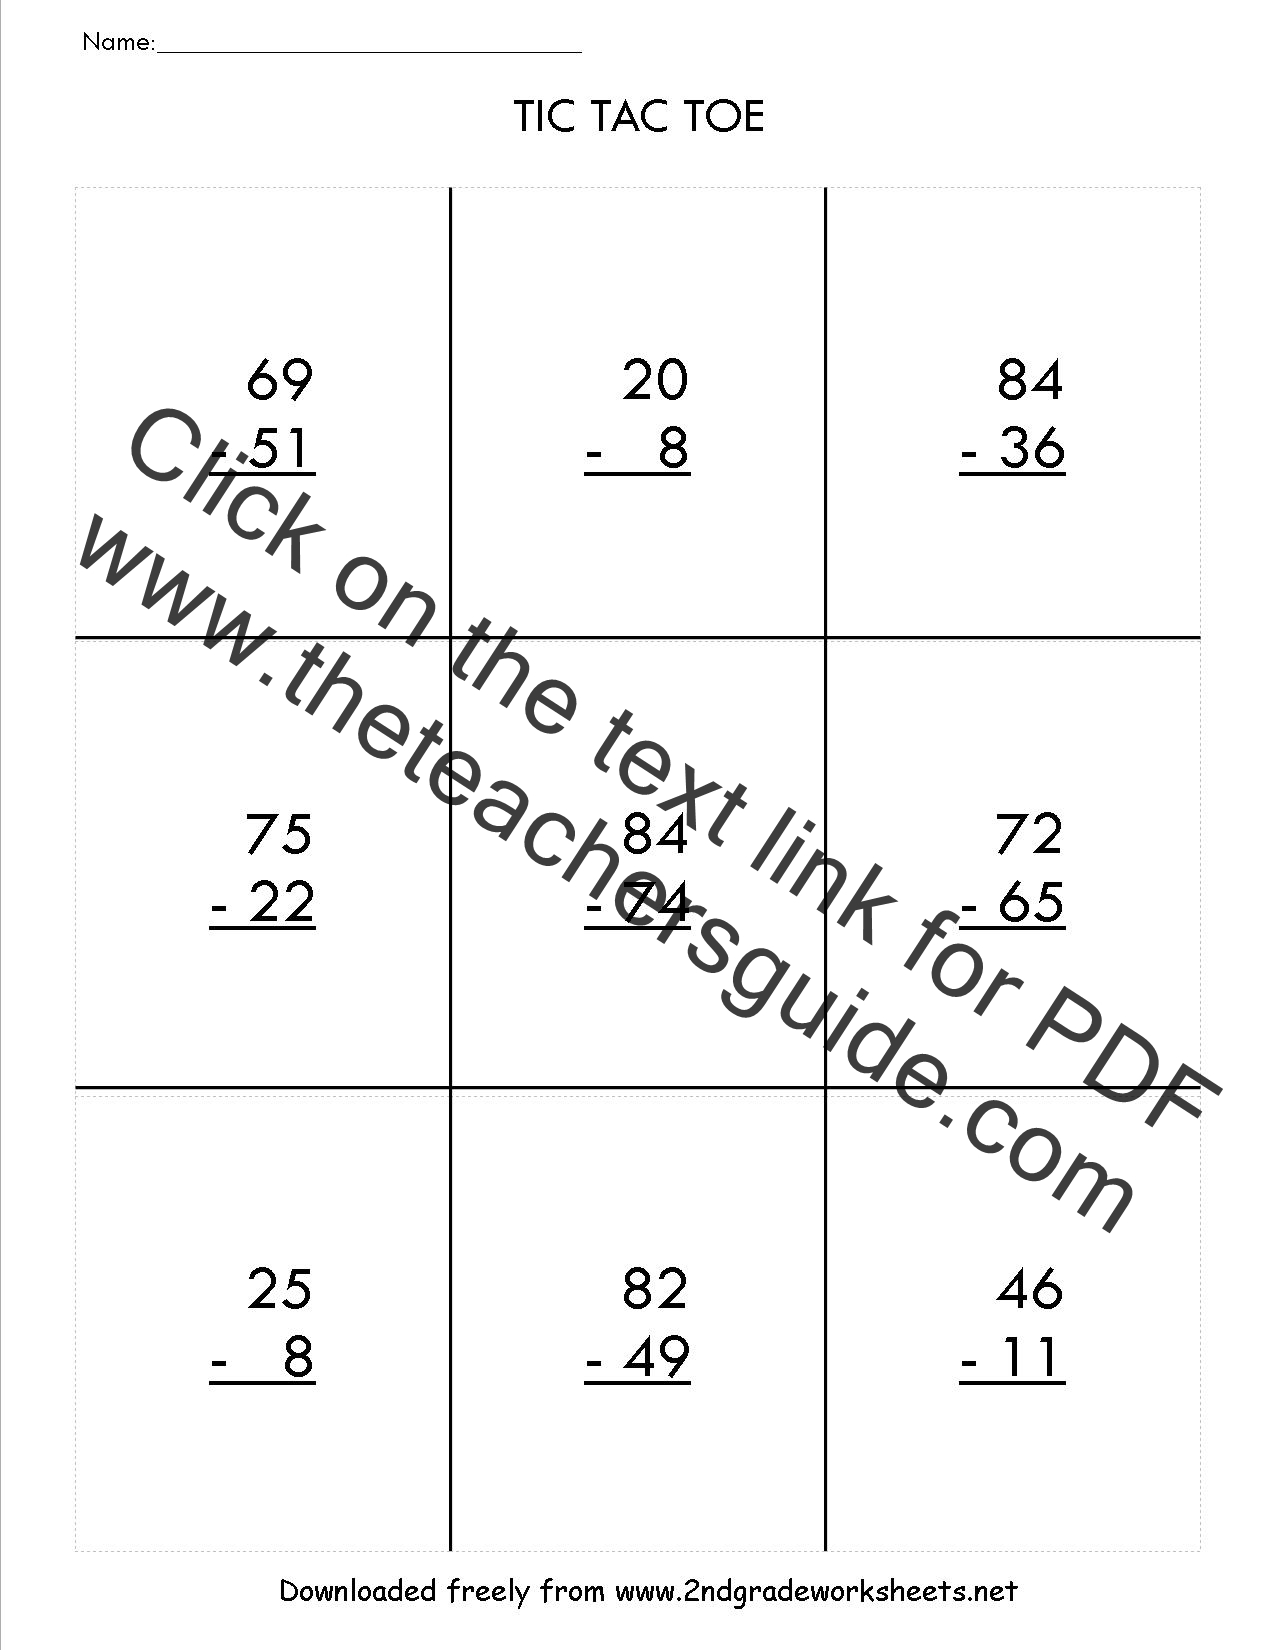 Two Digit Subtraction Worksheets – Double Digit Subtraction with Regrouping Worksheets